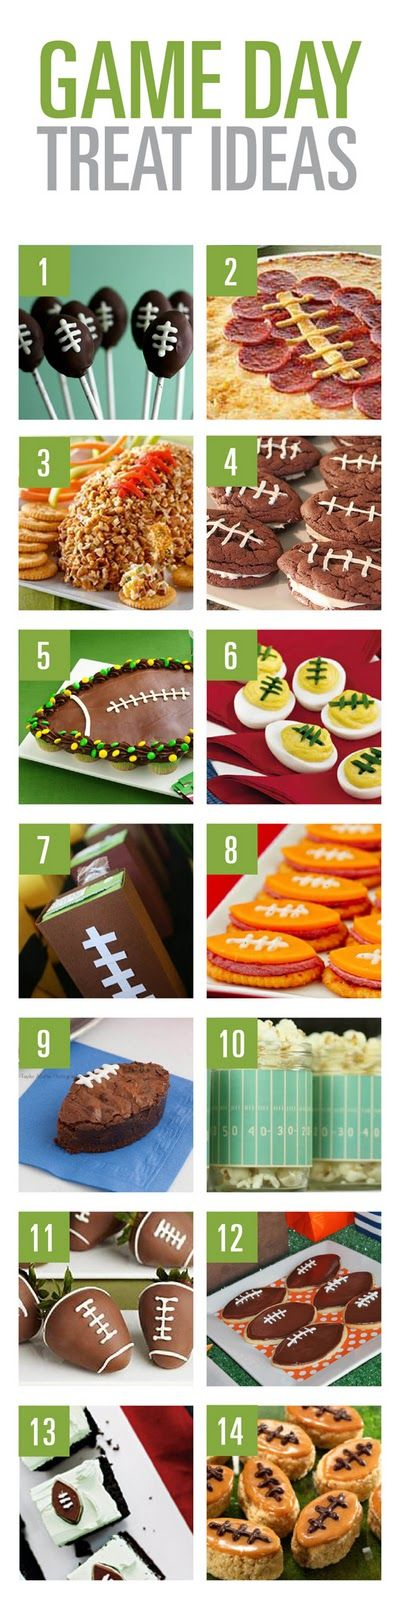 Treat ideas for football parties & Super Bowl Sunday